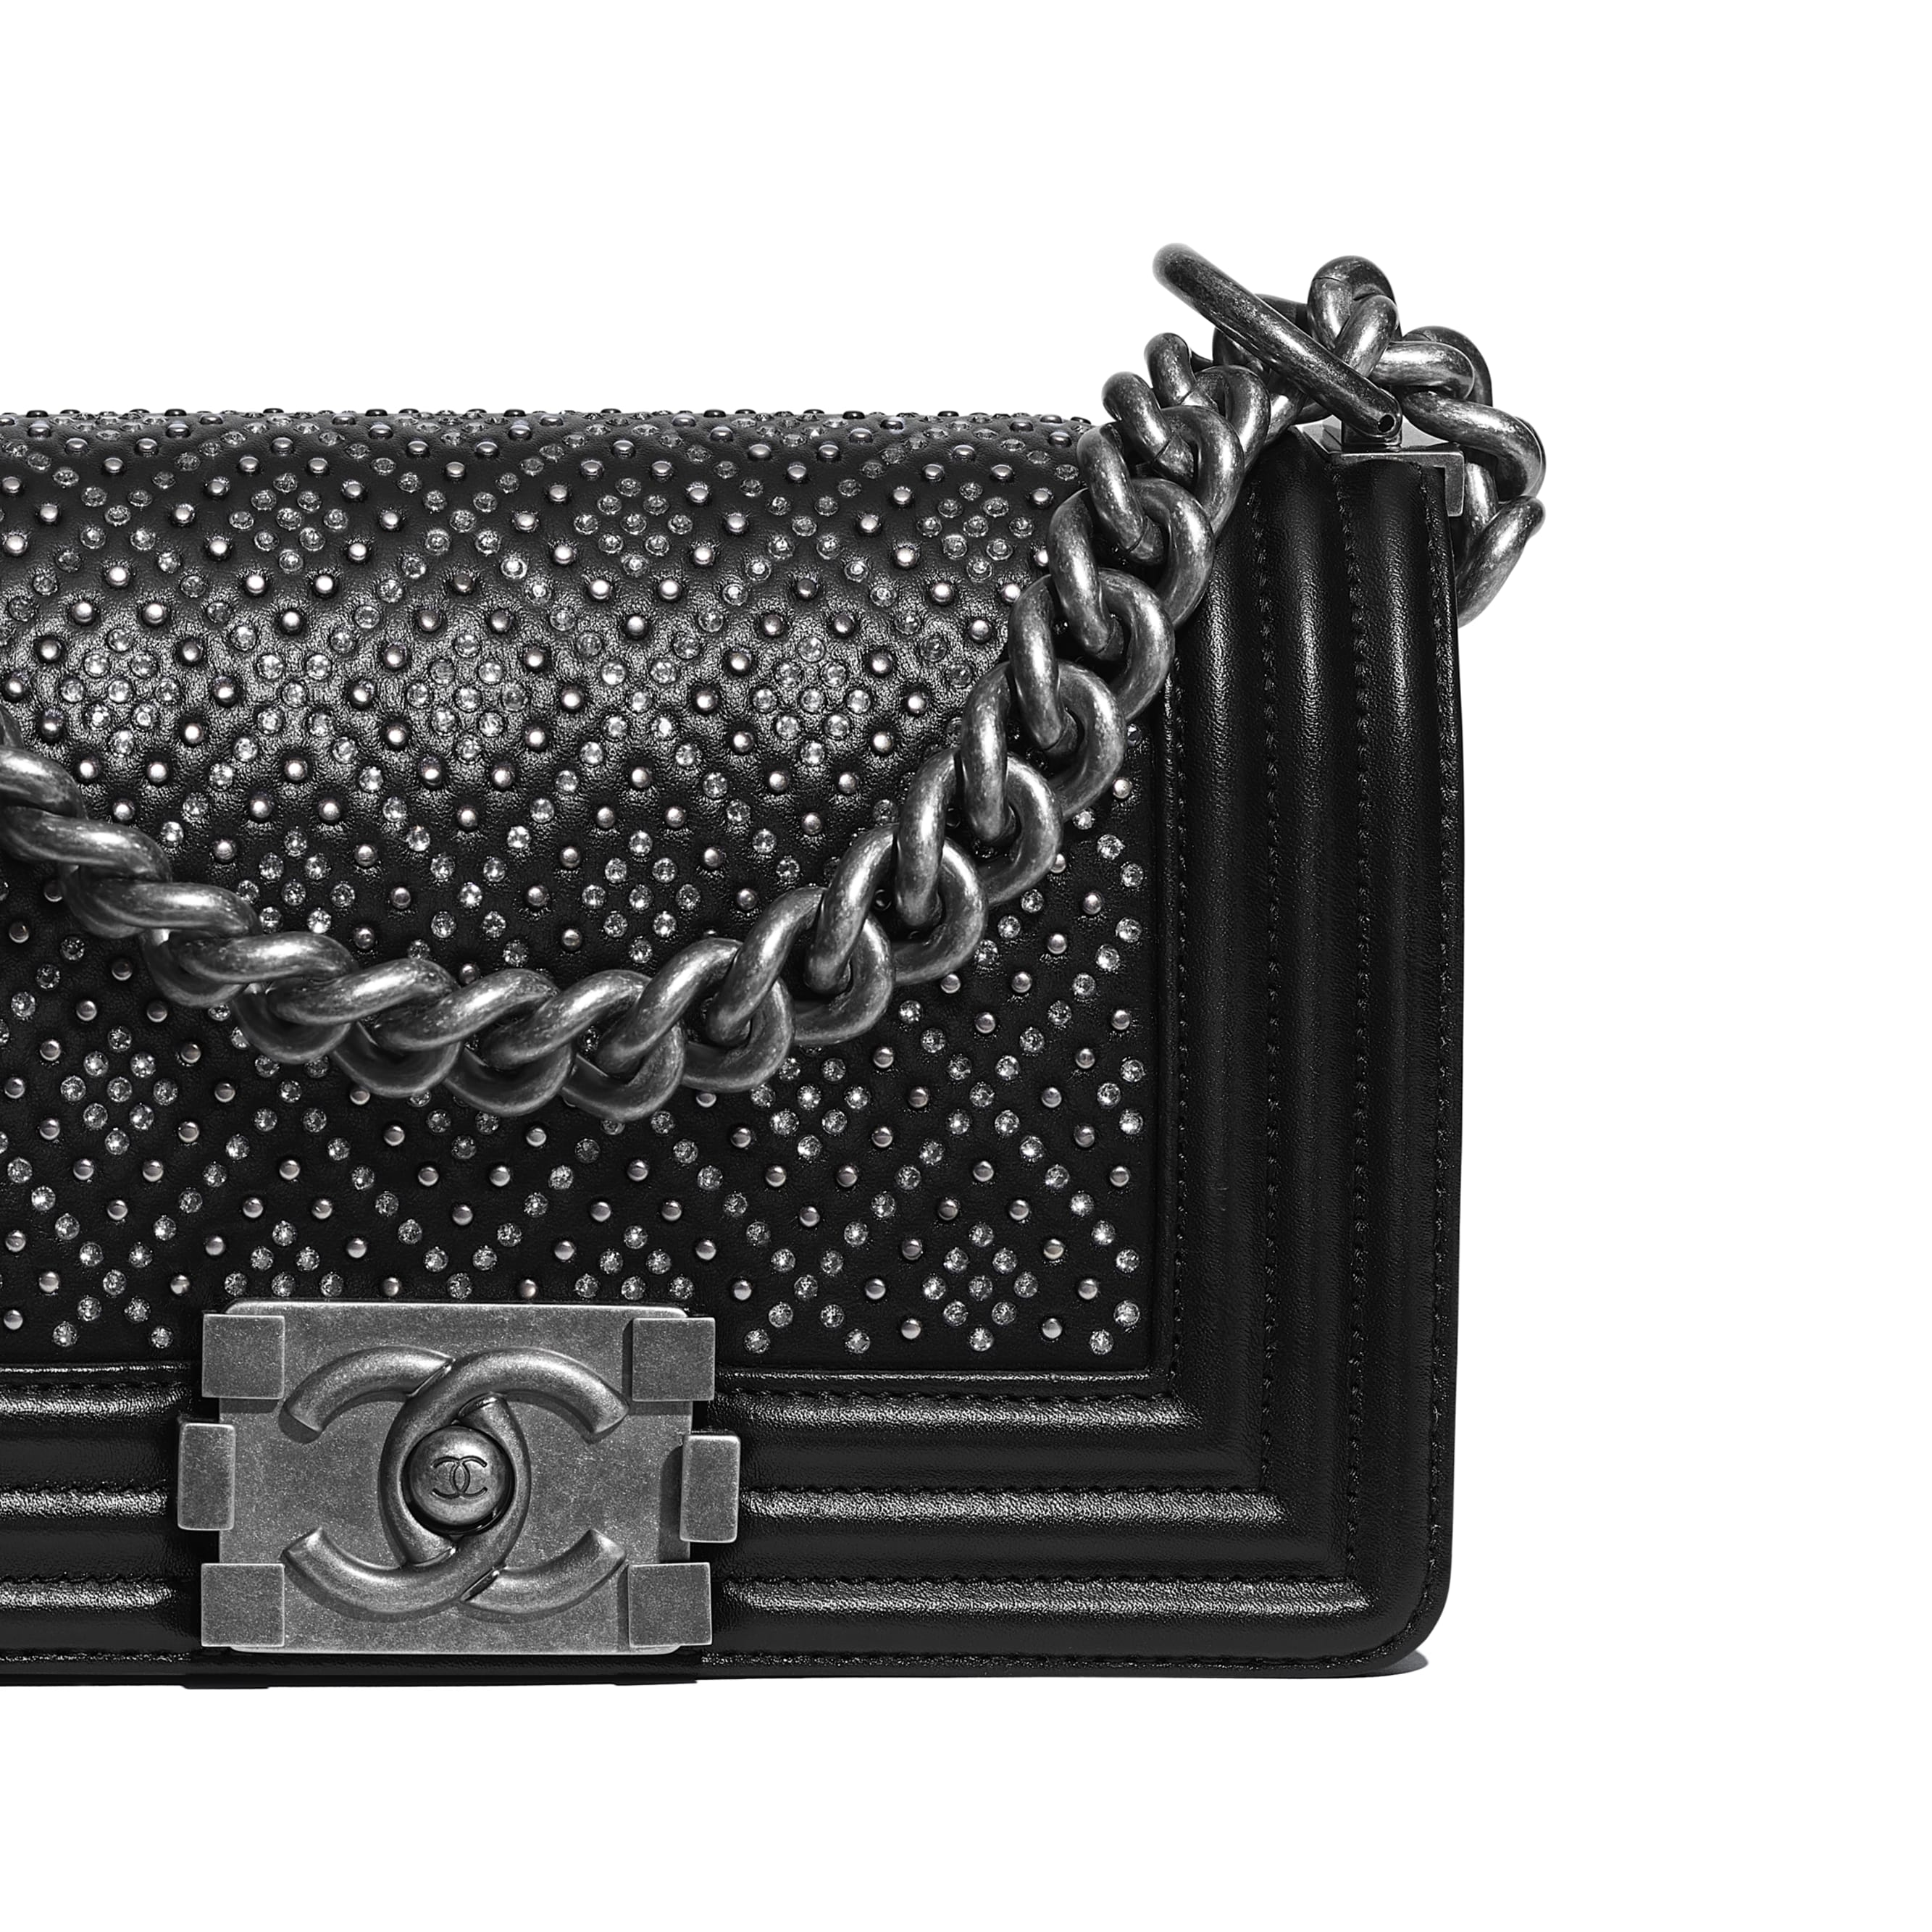 Small BOY CHANEL Handbag - Black - Calfskin, Studs, Diamanté & Ruthenium-Finish Metal - Extra view - see standard sized version